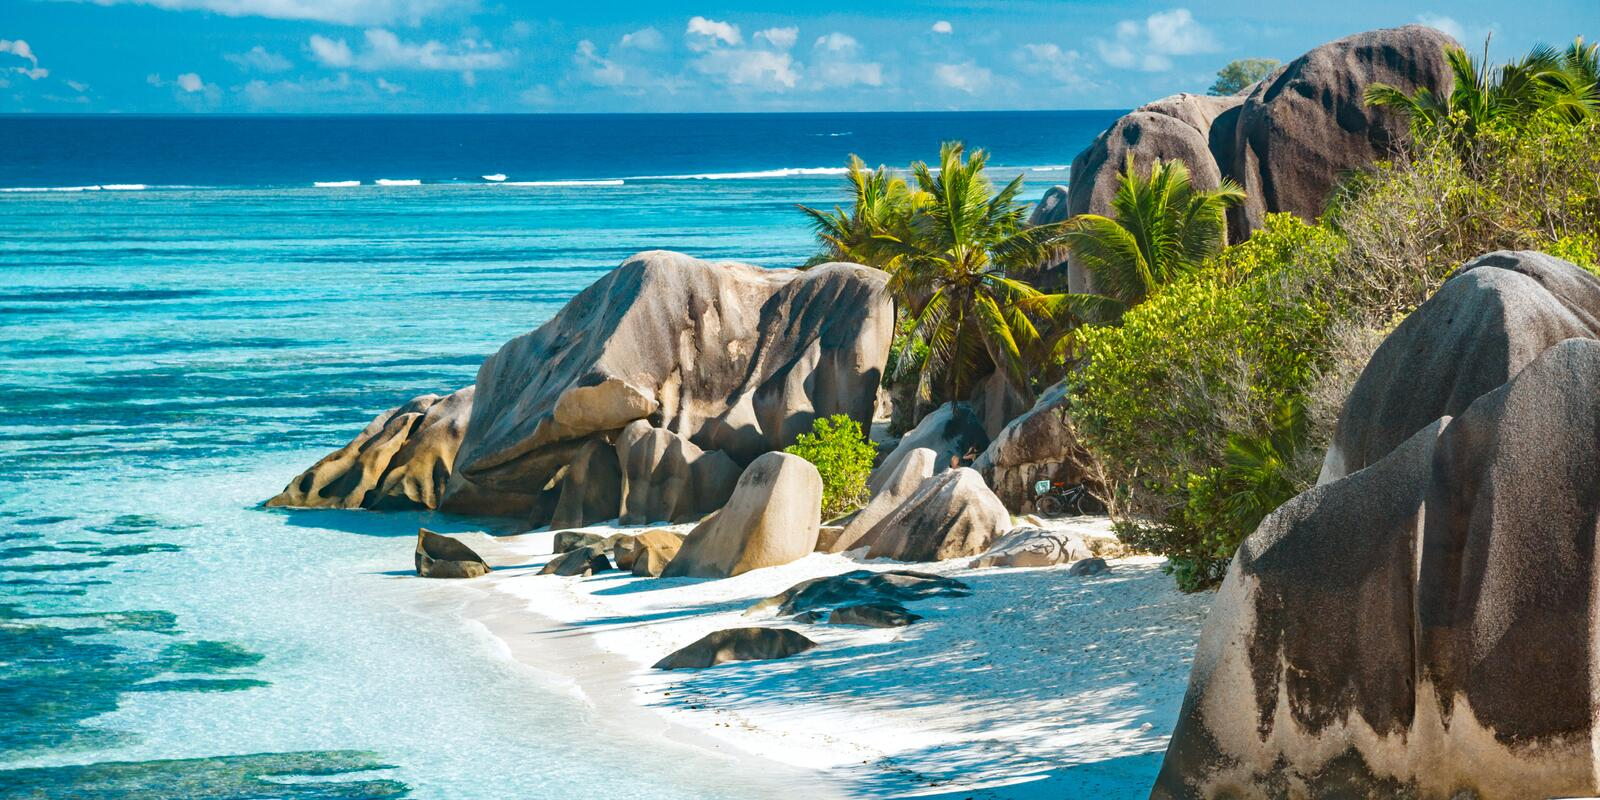 Premium 4-day Catamaran cruise with hostess - All Inclusive - La Digue